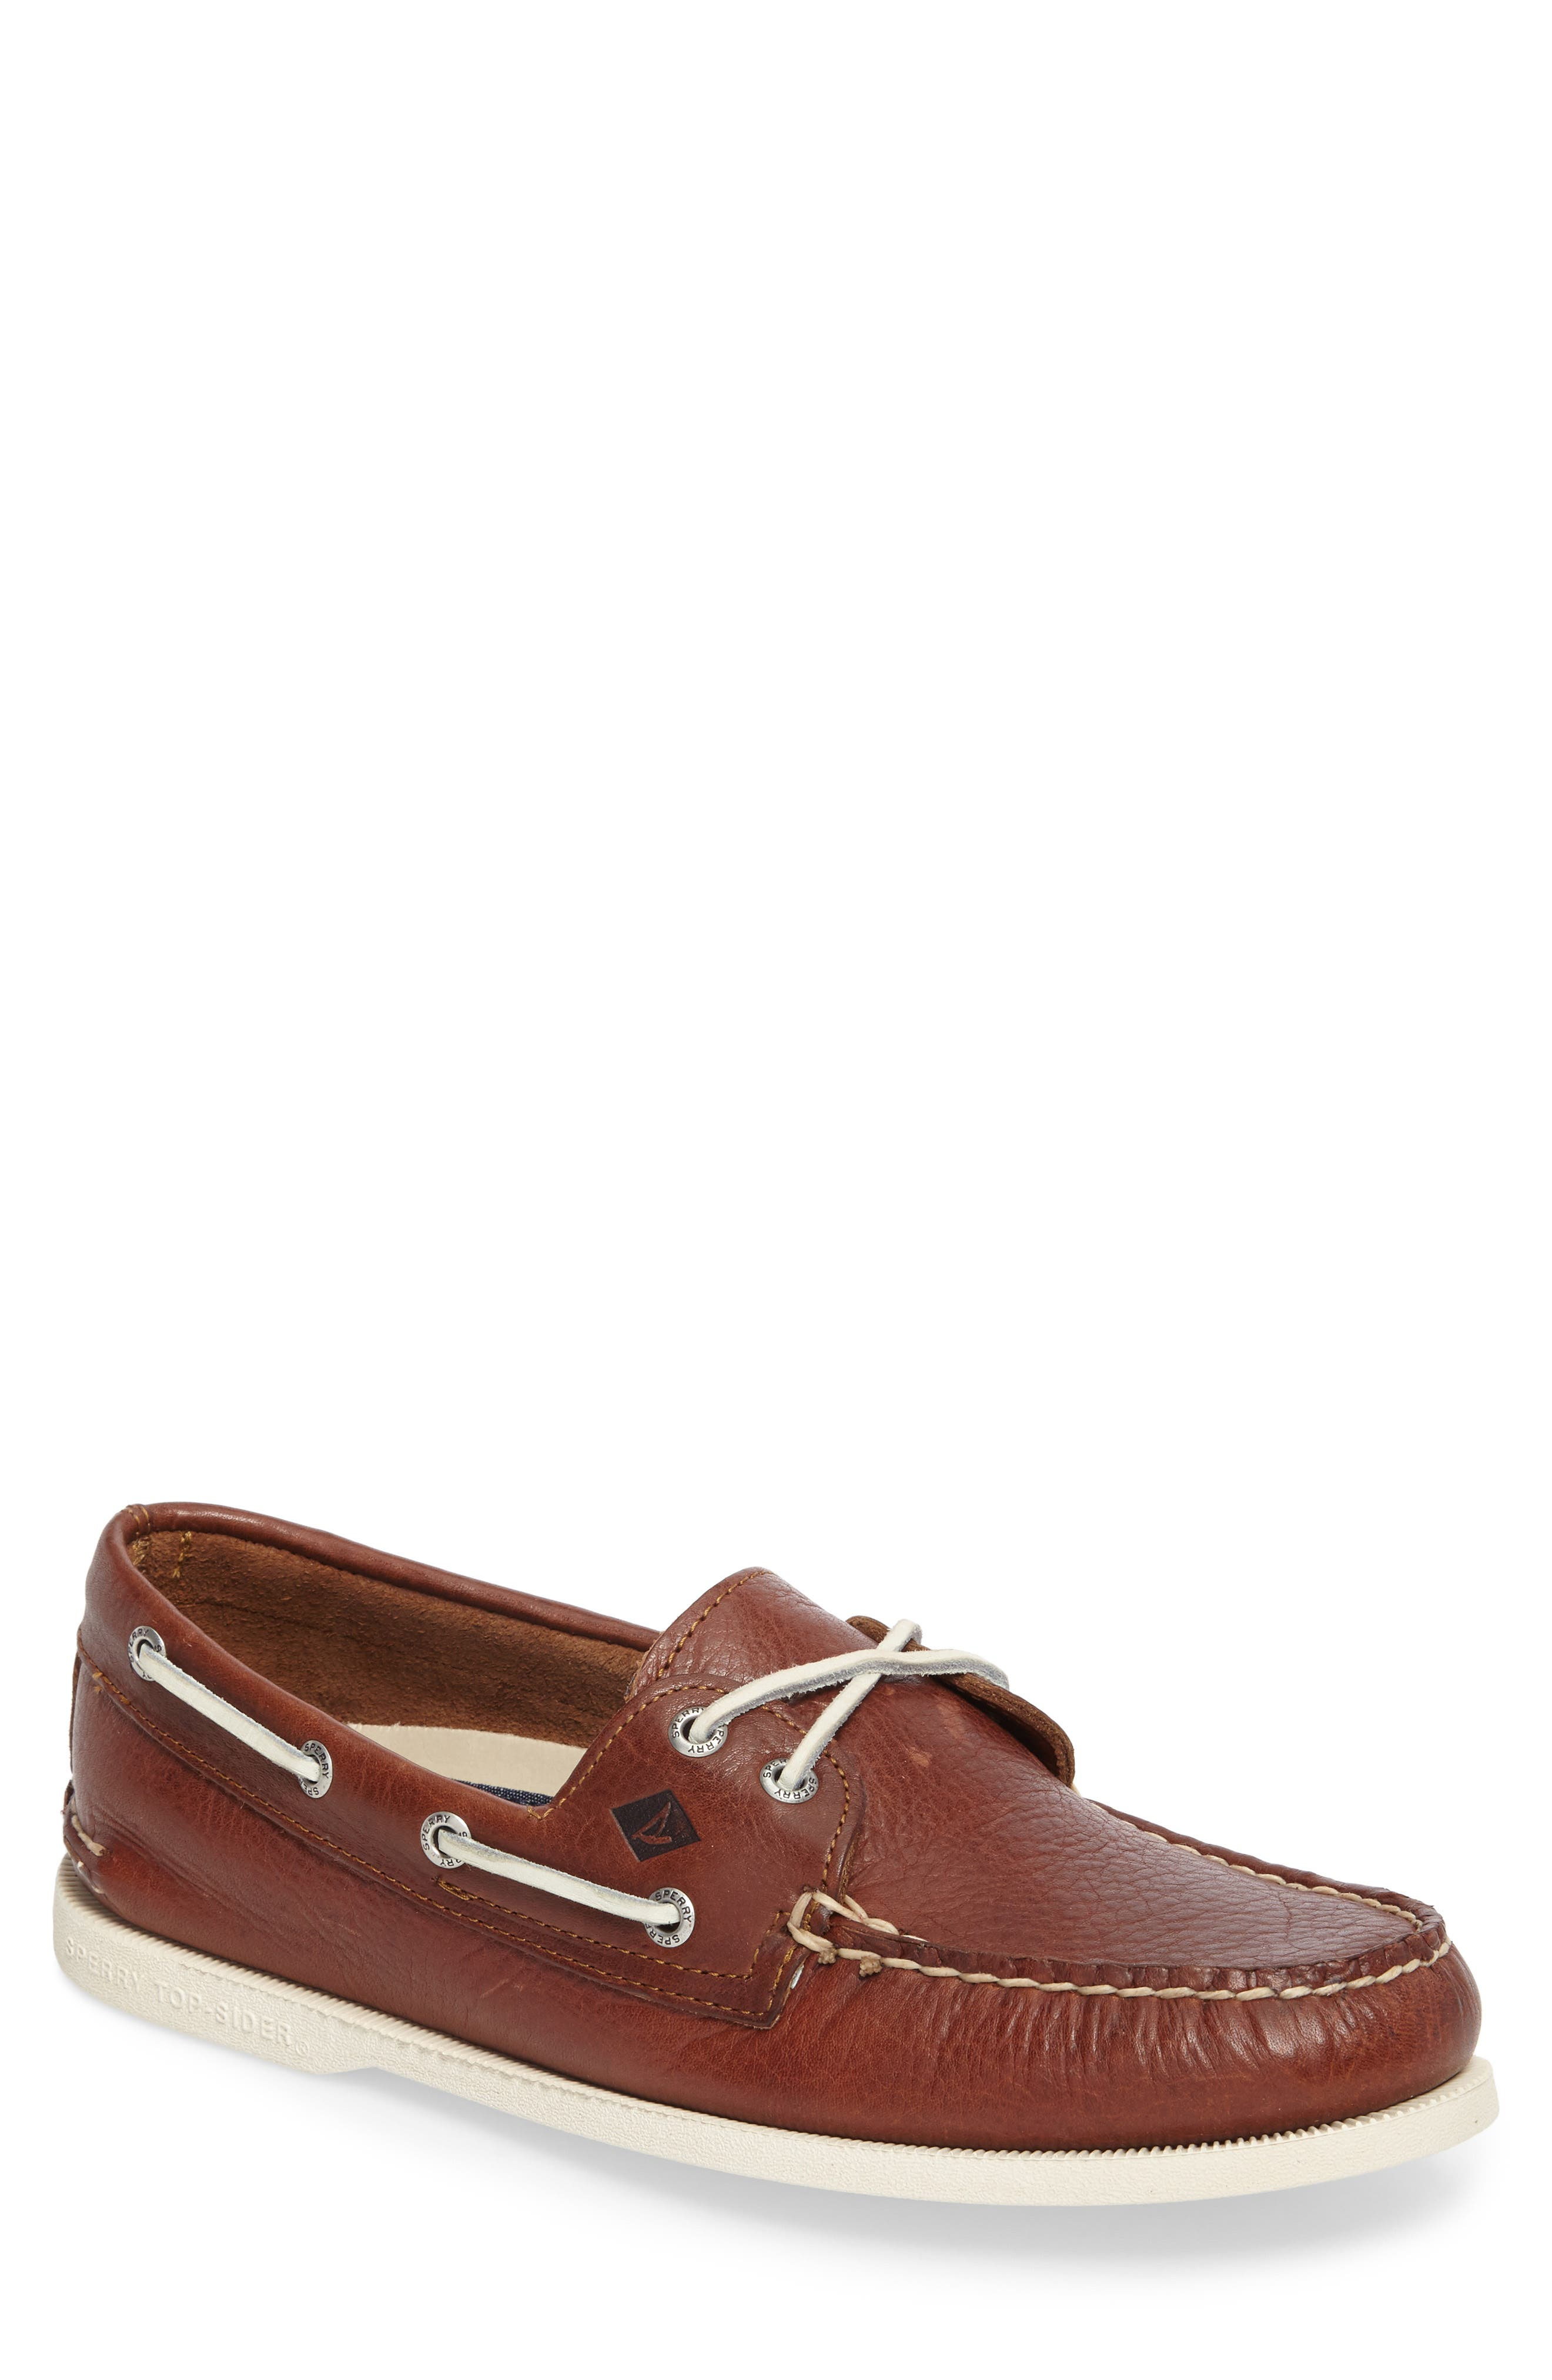 Alternate Image 1 Selected - Sperry Authentic Original Boat Shoe (Men)